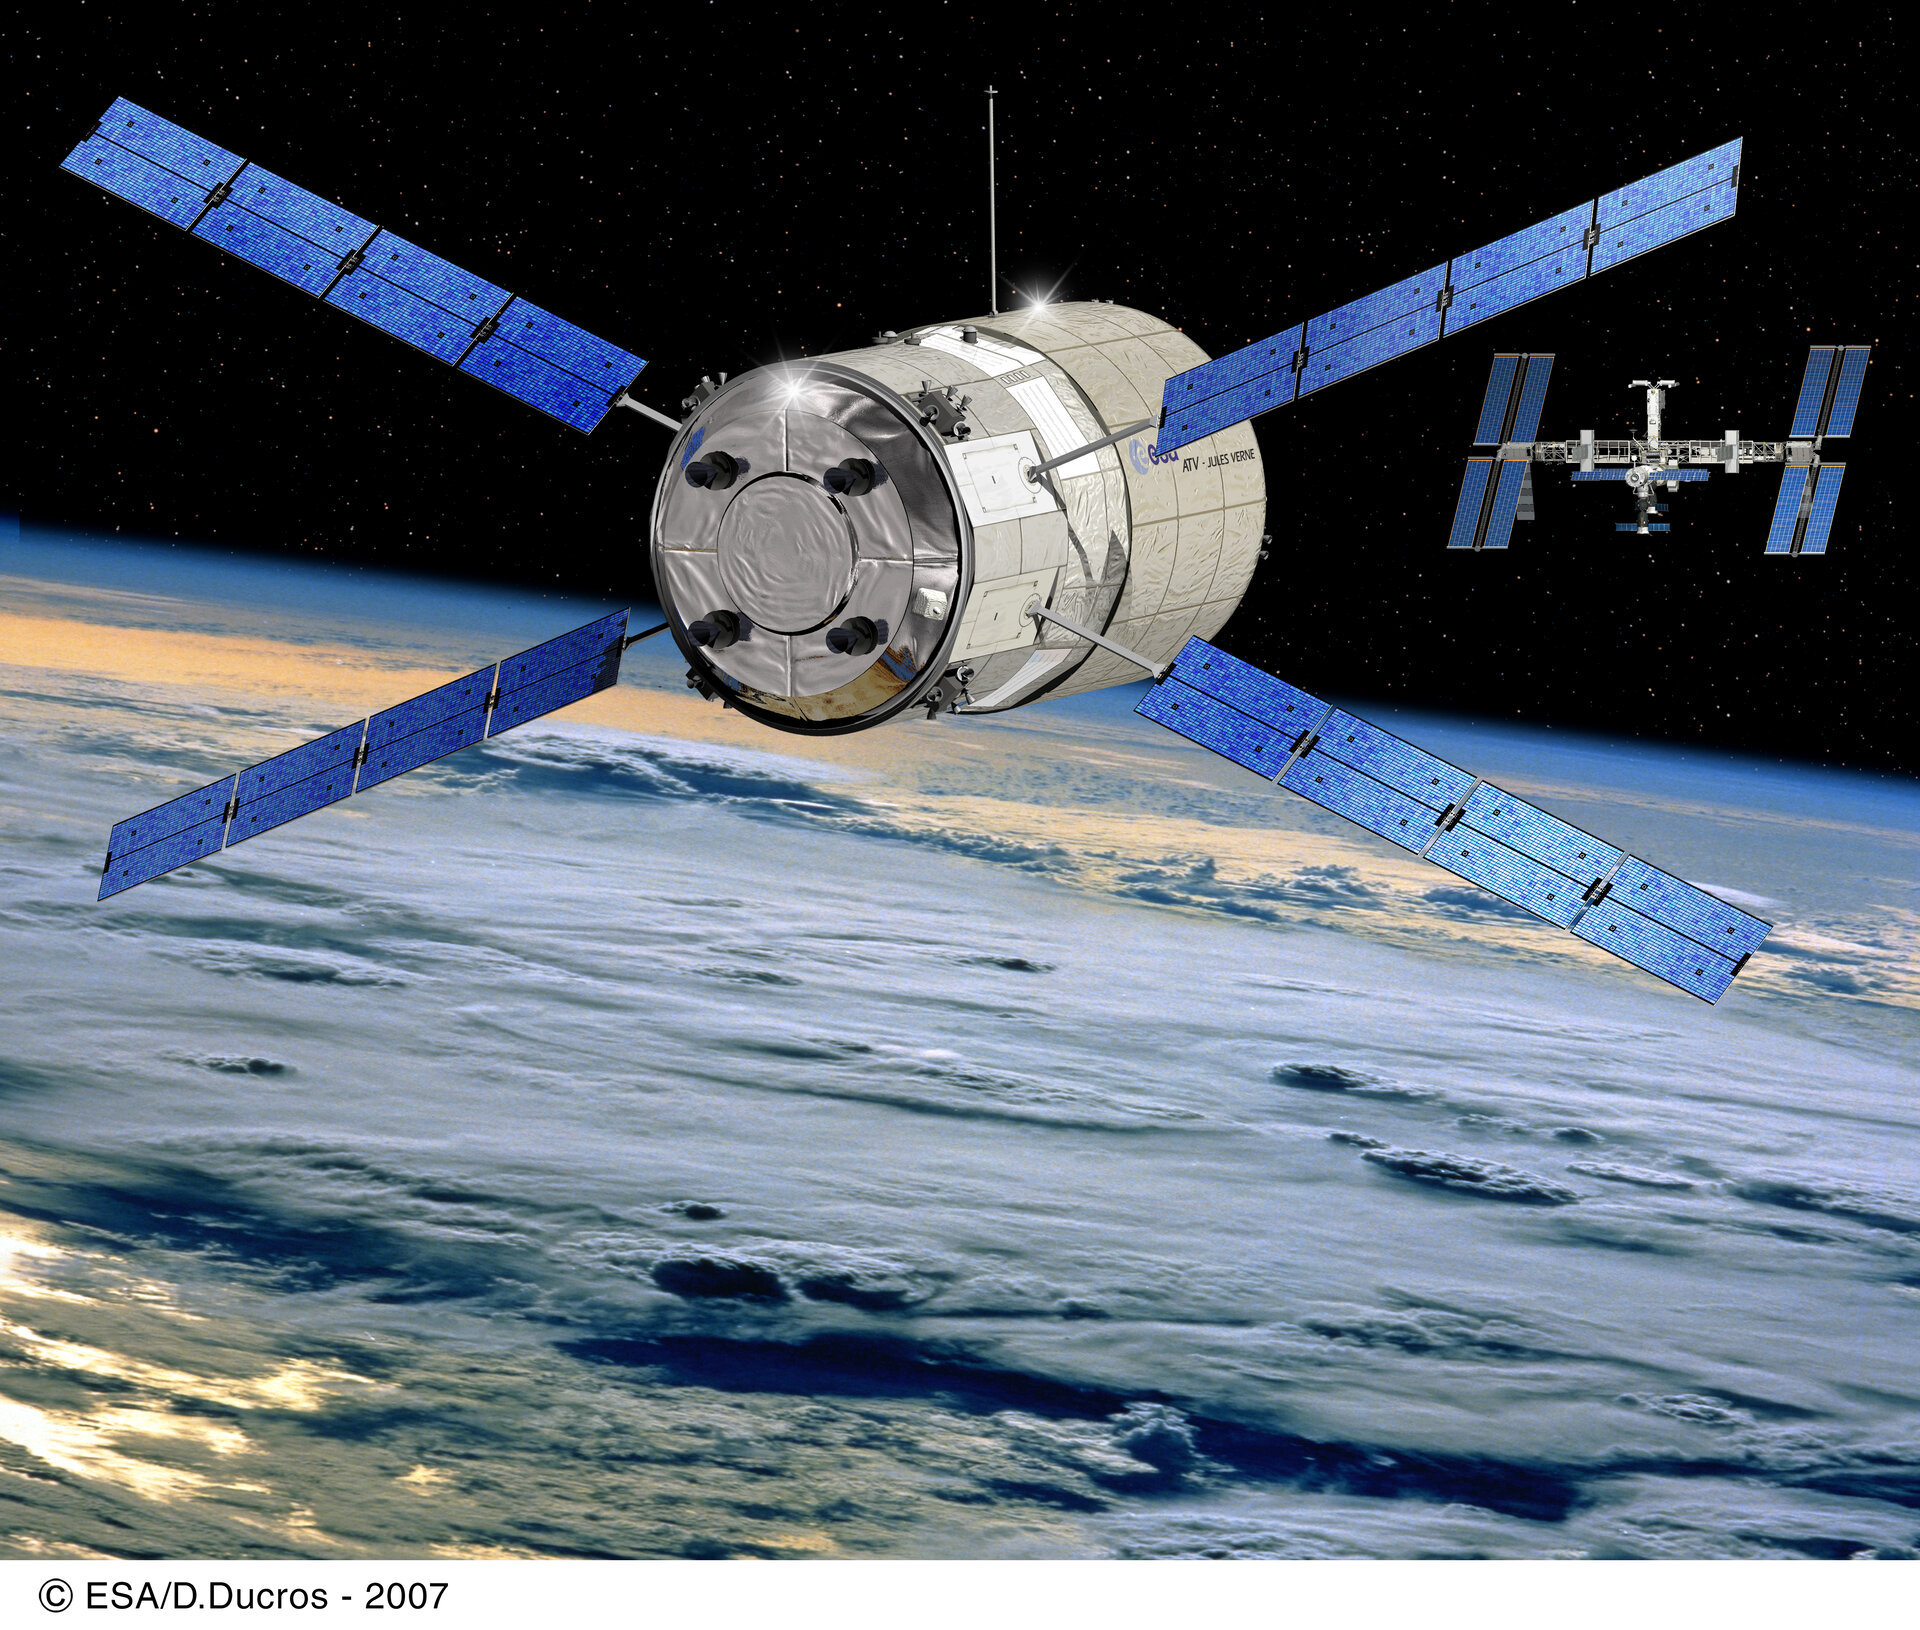 From 2005 the European Automated Transfer Vehicle will also be used to ship cargo to ISS